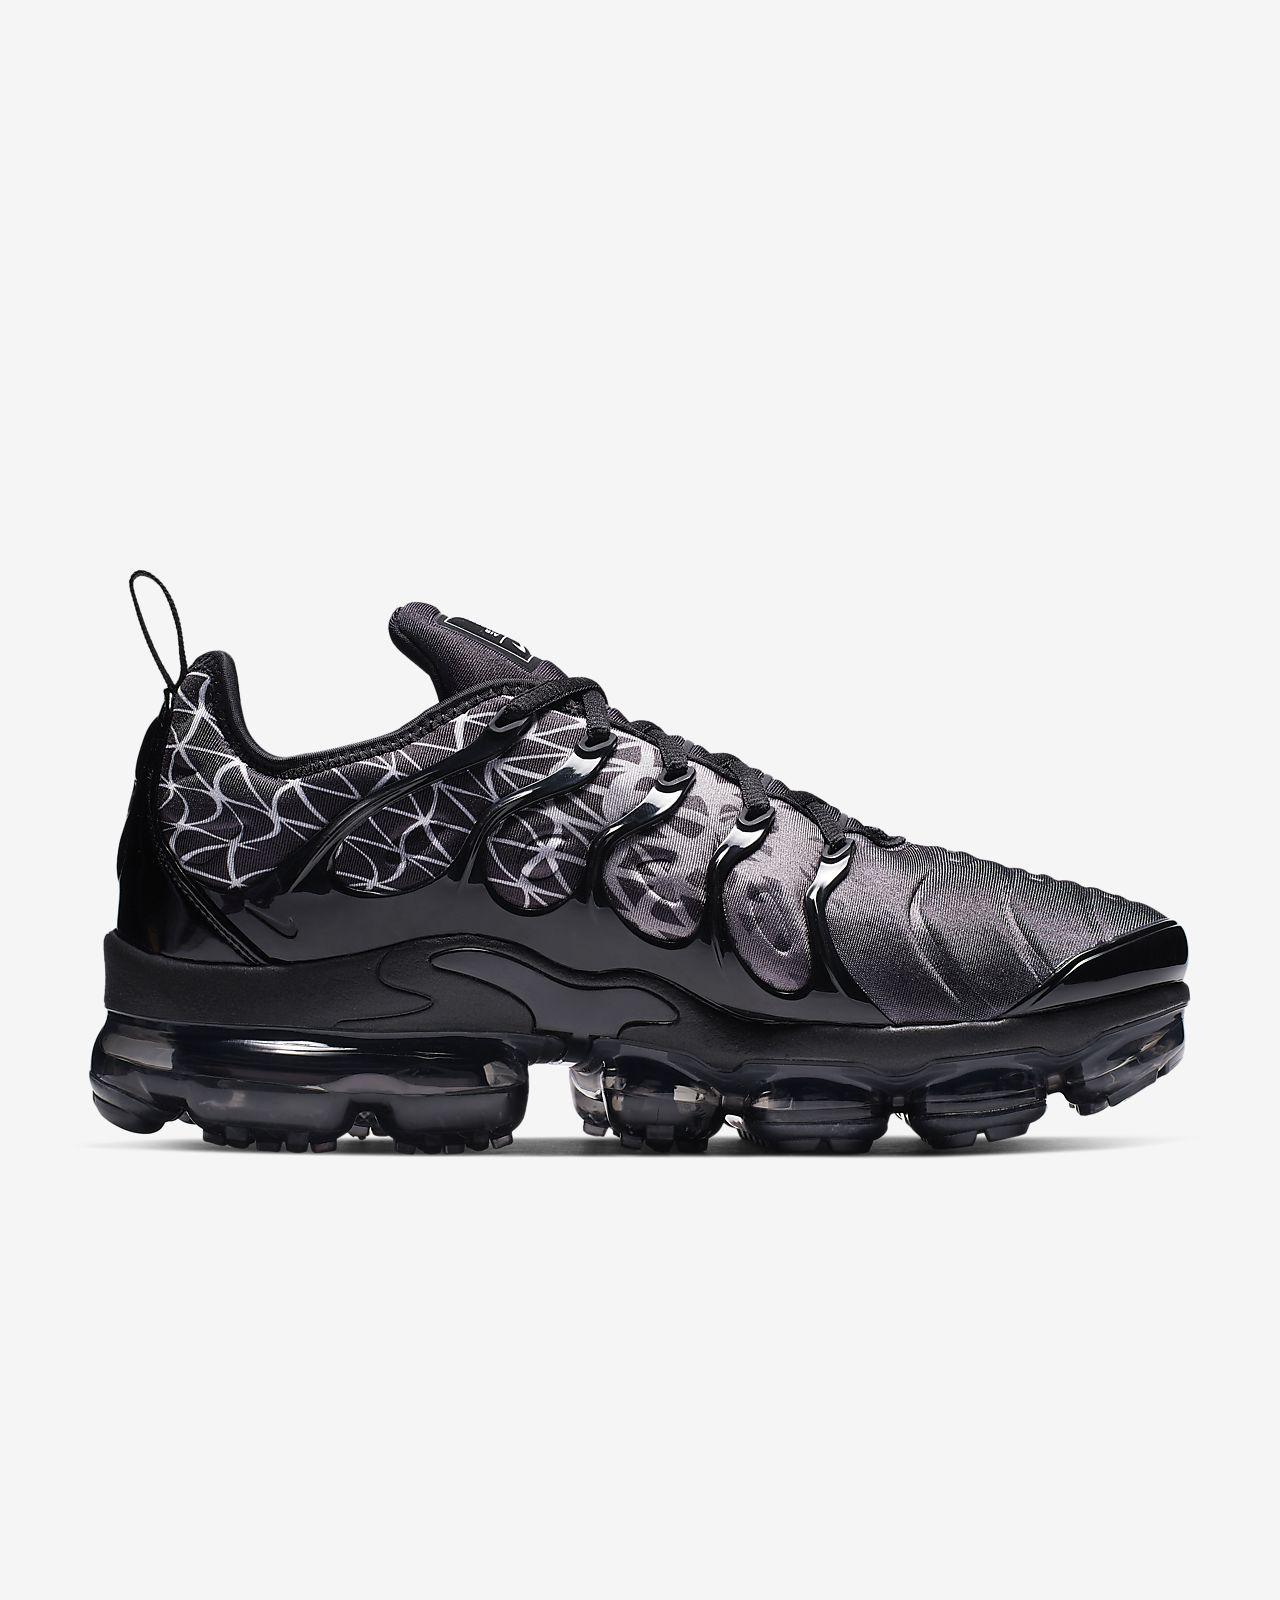 8662189f7a Nike Air VaporMax Plus Men's Shoe. Nike.com CA